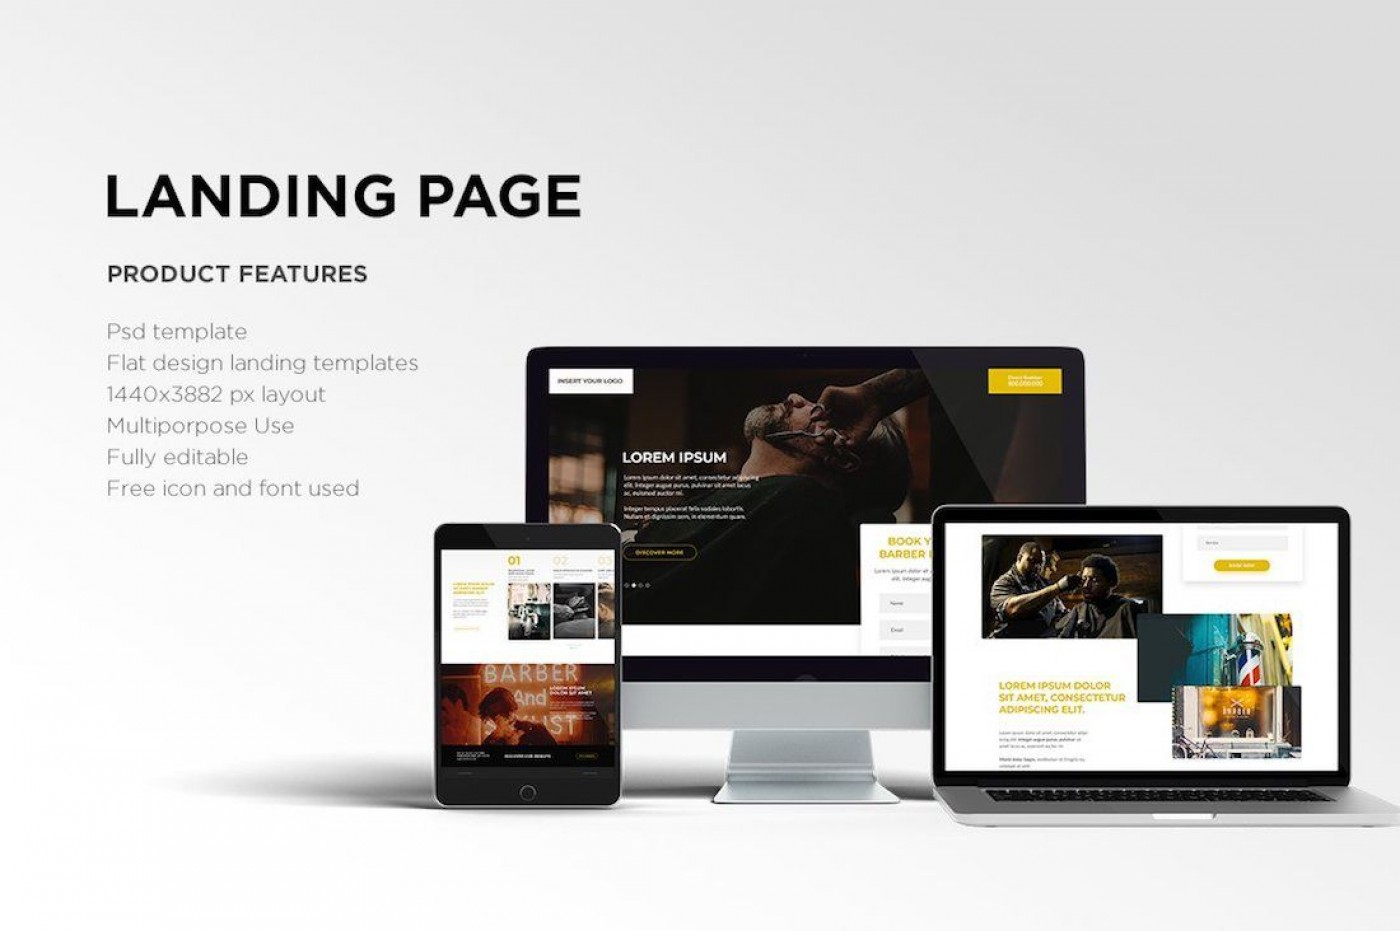 005 Impressive One Page Website Template Psd Free Download Idea 1400